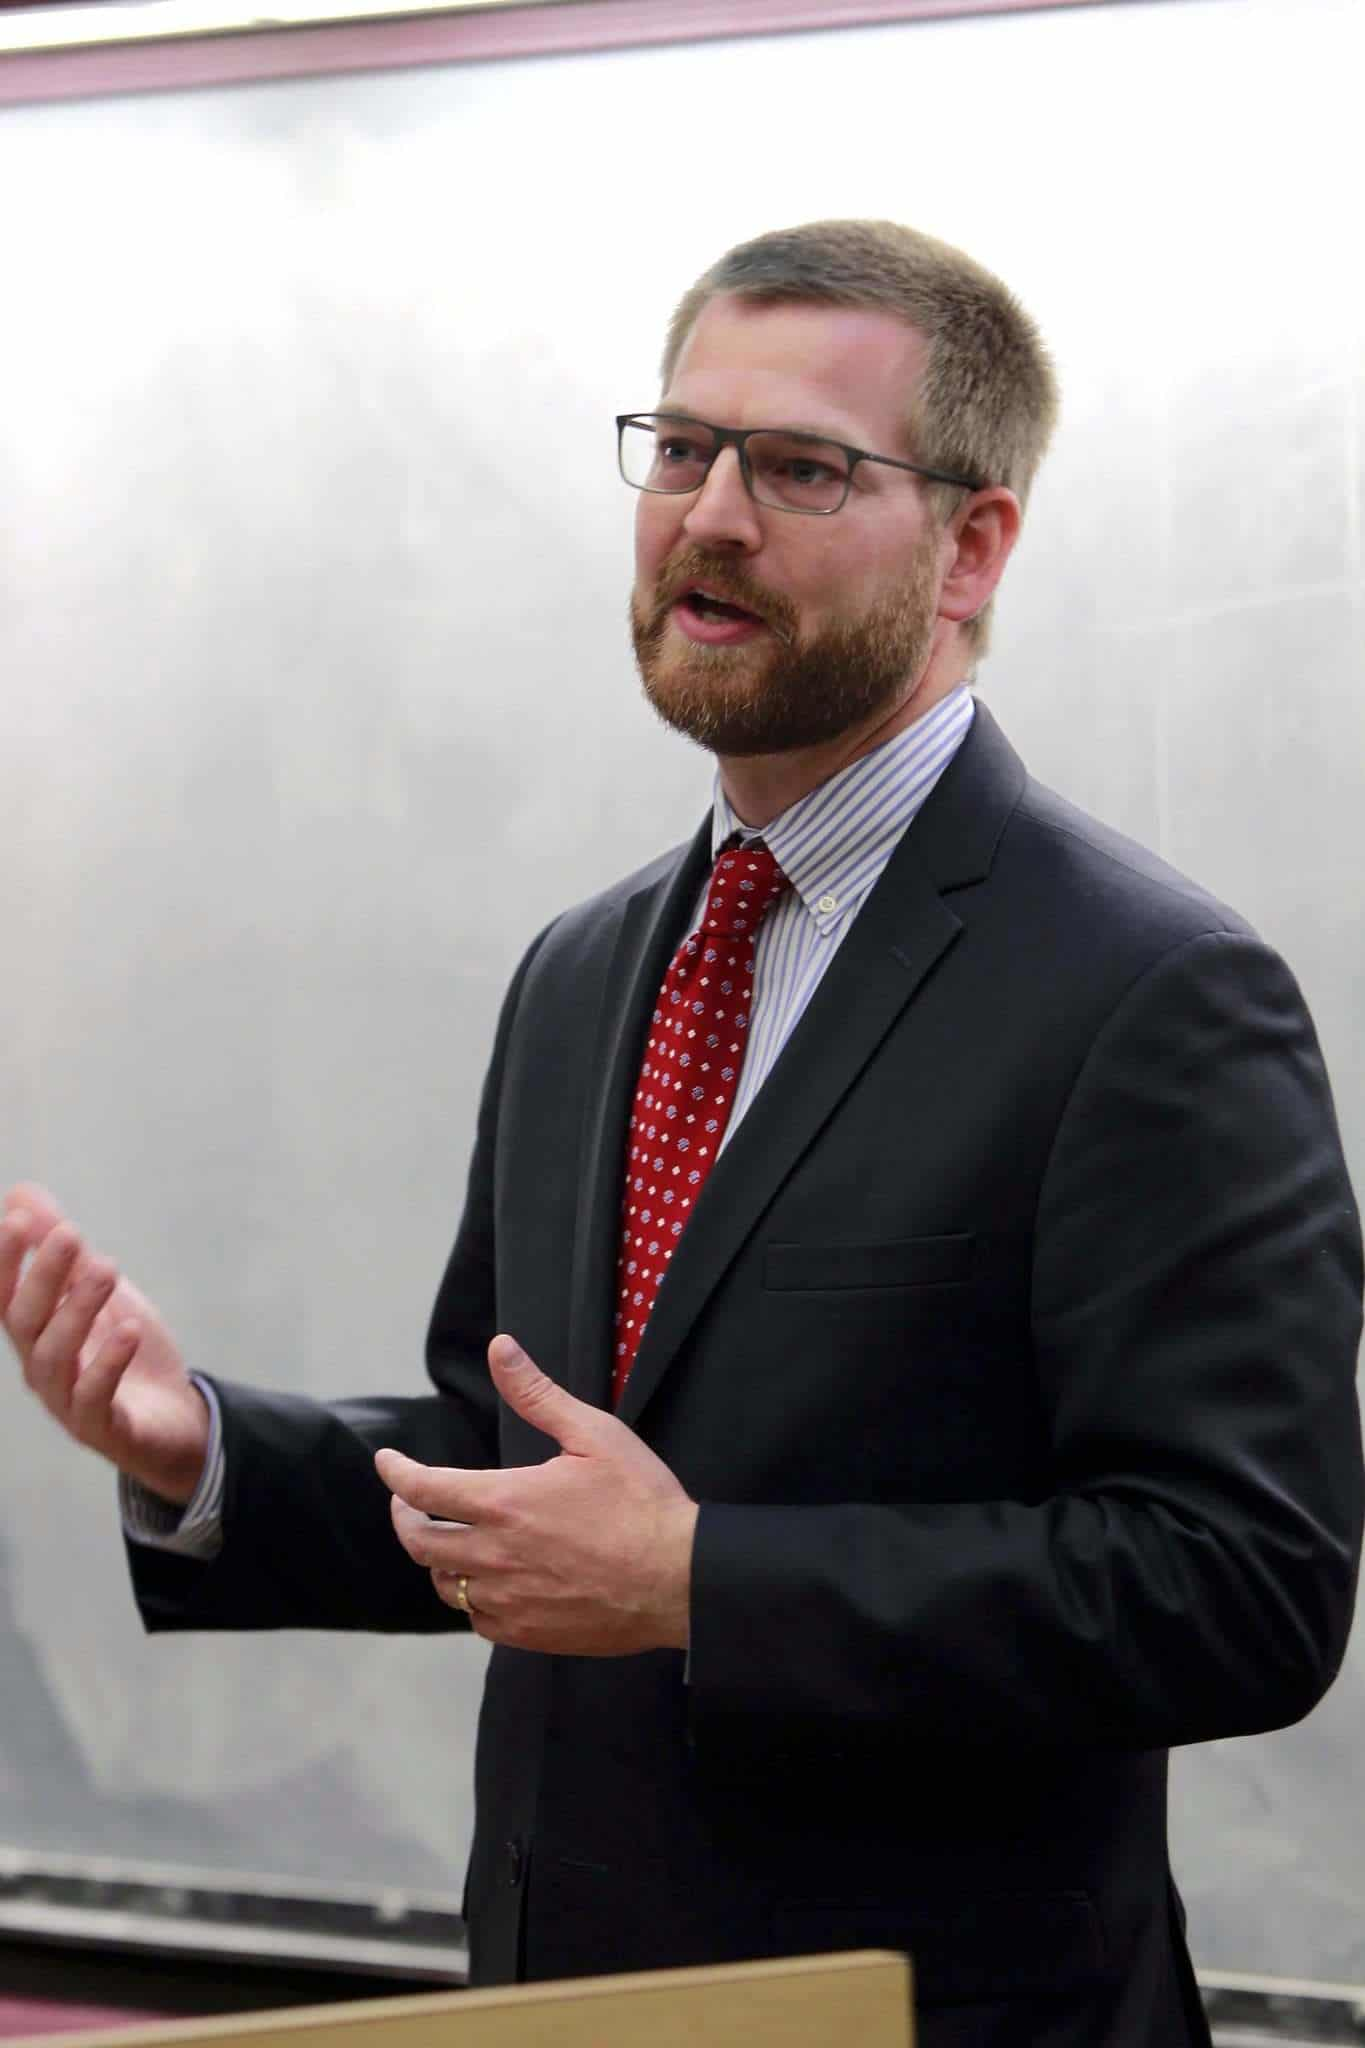 BORIS MINKEVICH / WINNIPEG FREE PRESS Dr. Kent Brantly addresses members of the University of Manitoba's Bannatyne campus community Friday. His mission is to tell the story of West African countries hit hard by the virus almost four years ago.